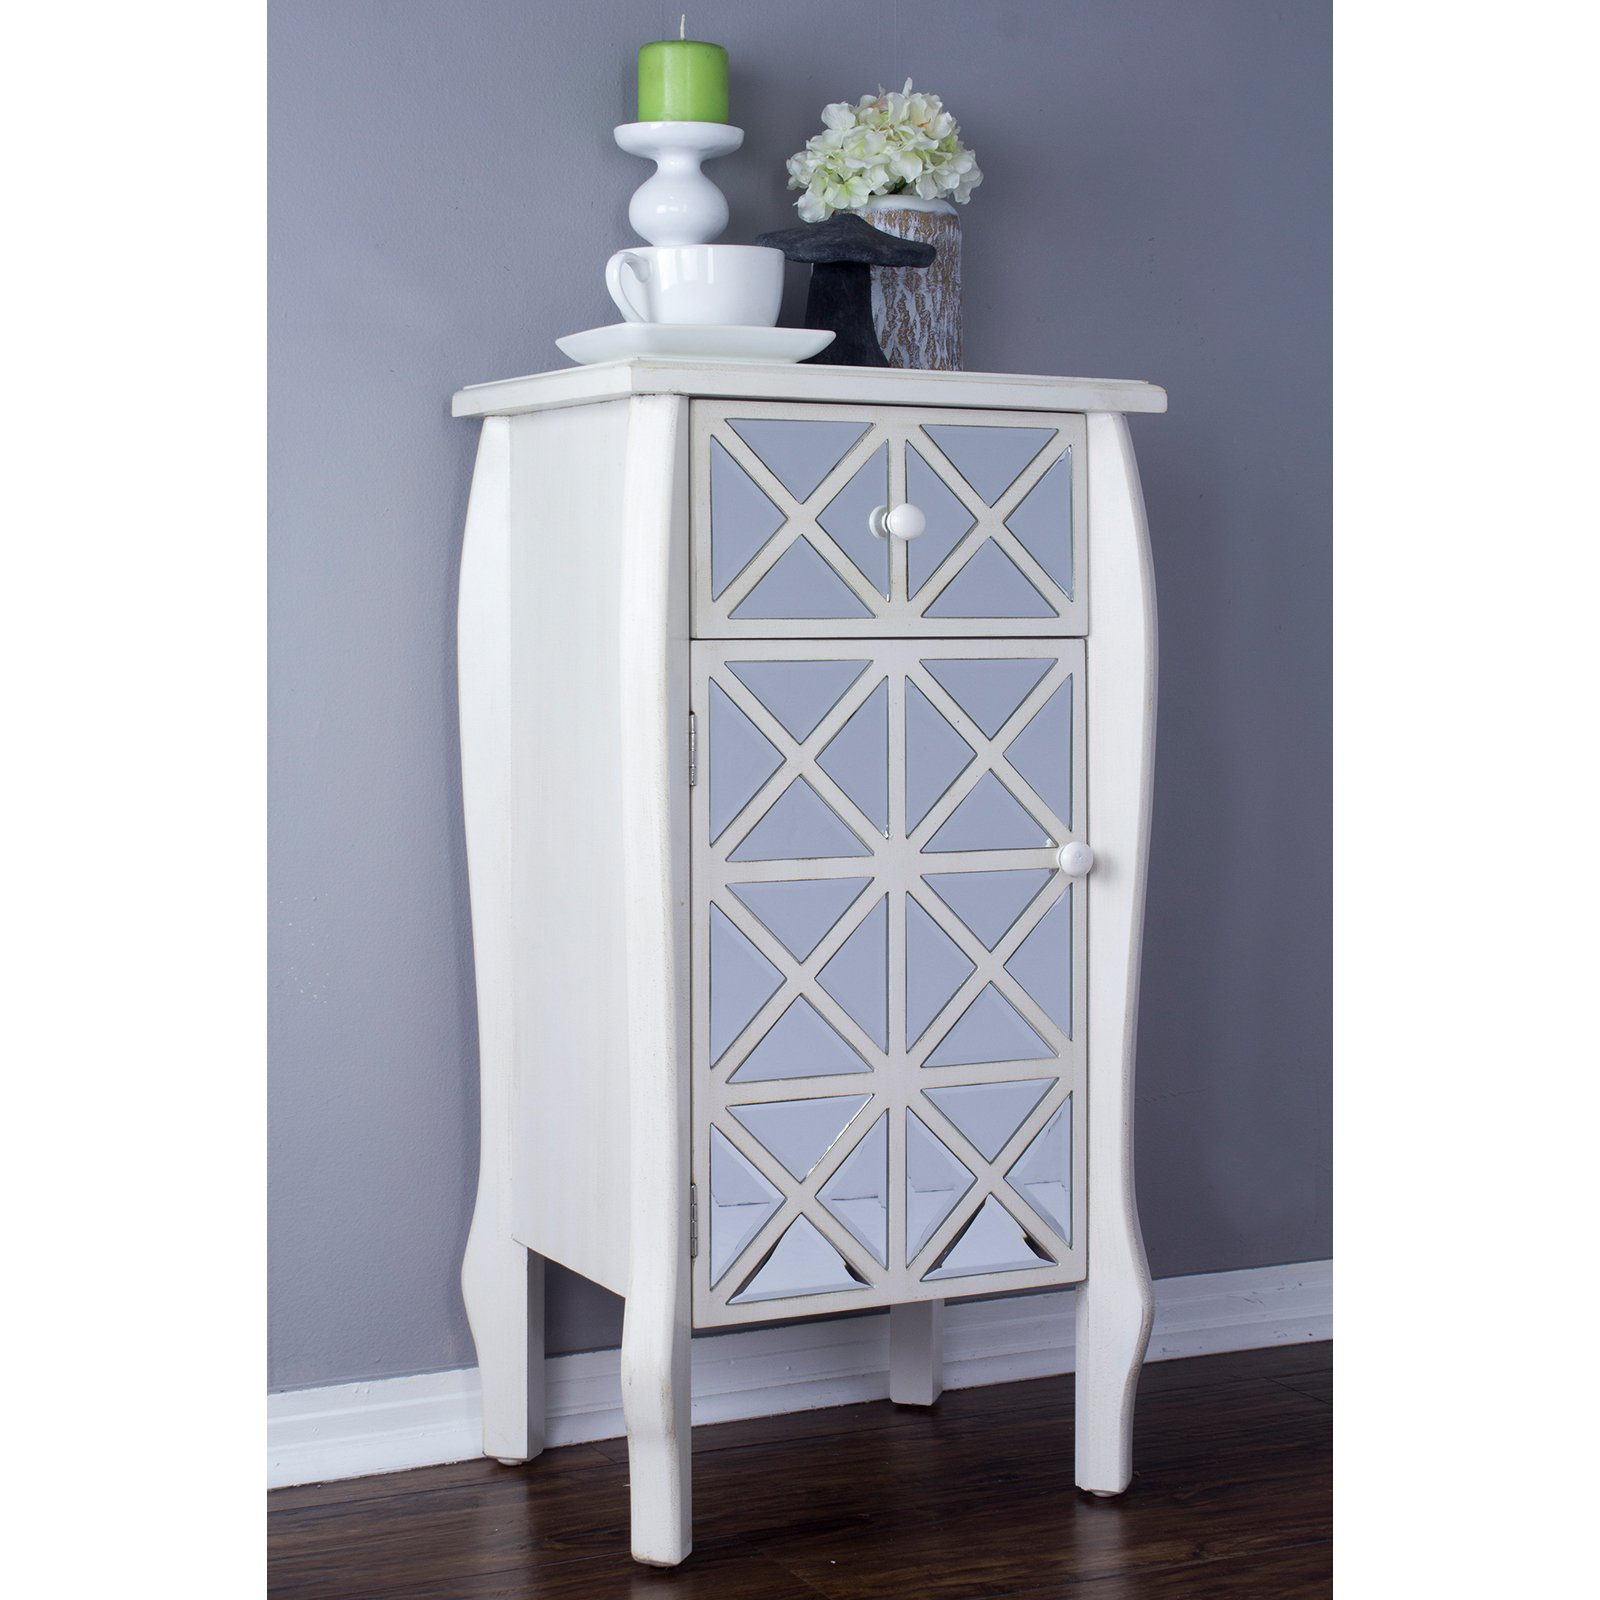 Heather Ann Creations Lana Collection 1 Drawer 1 Door Accent Cabinet End Table